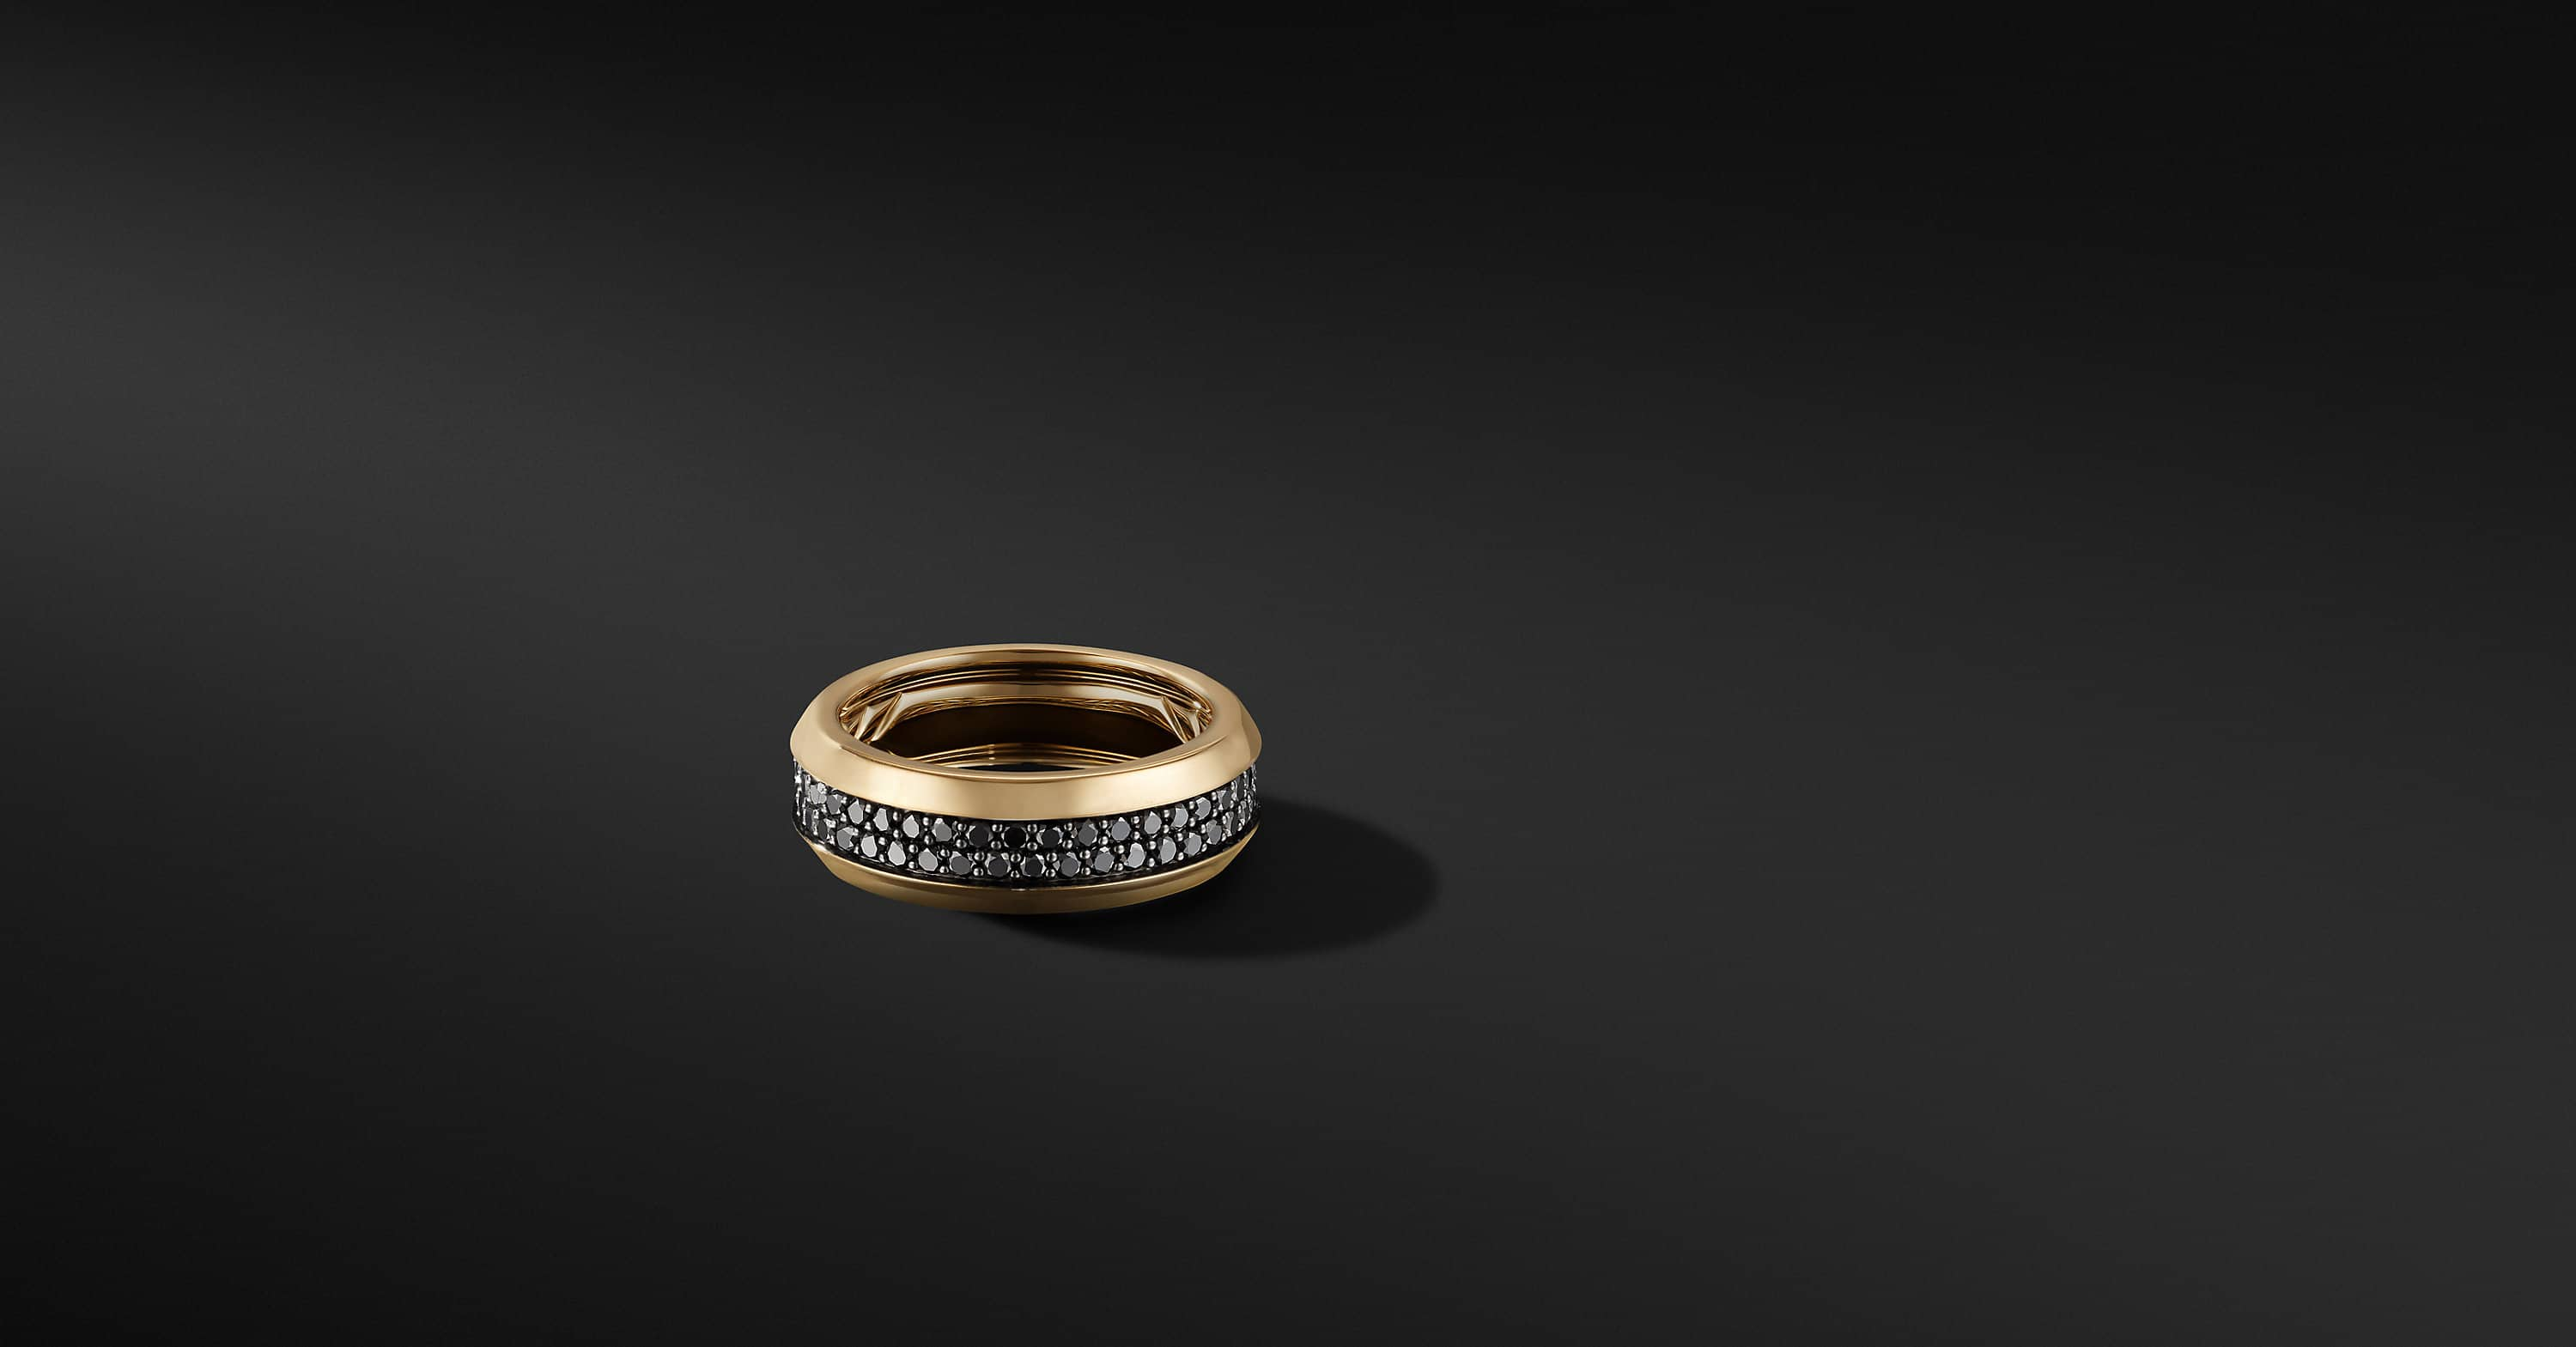 Beveled Two Row Band Ring in 18K Yellow Gold, 8mm